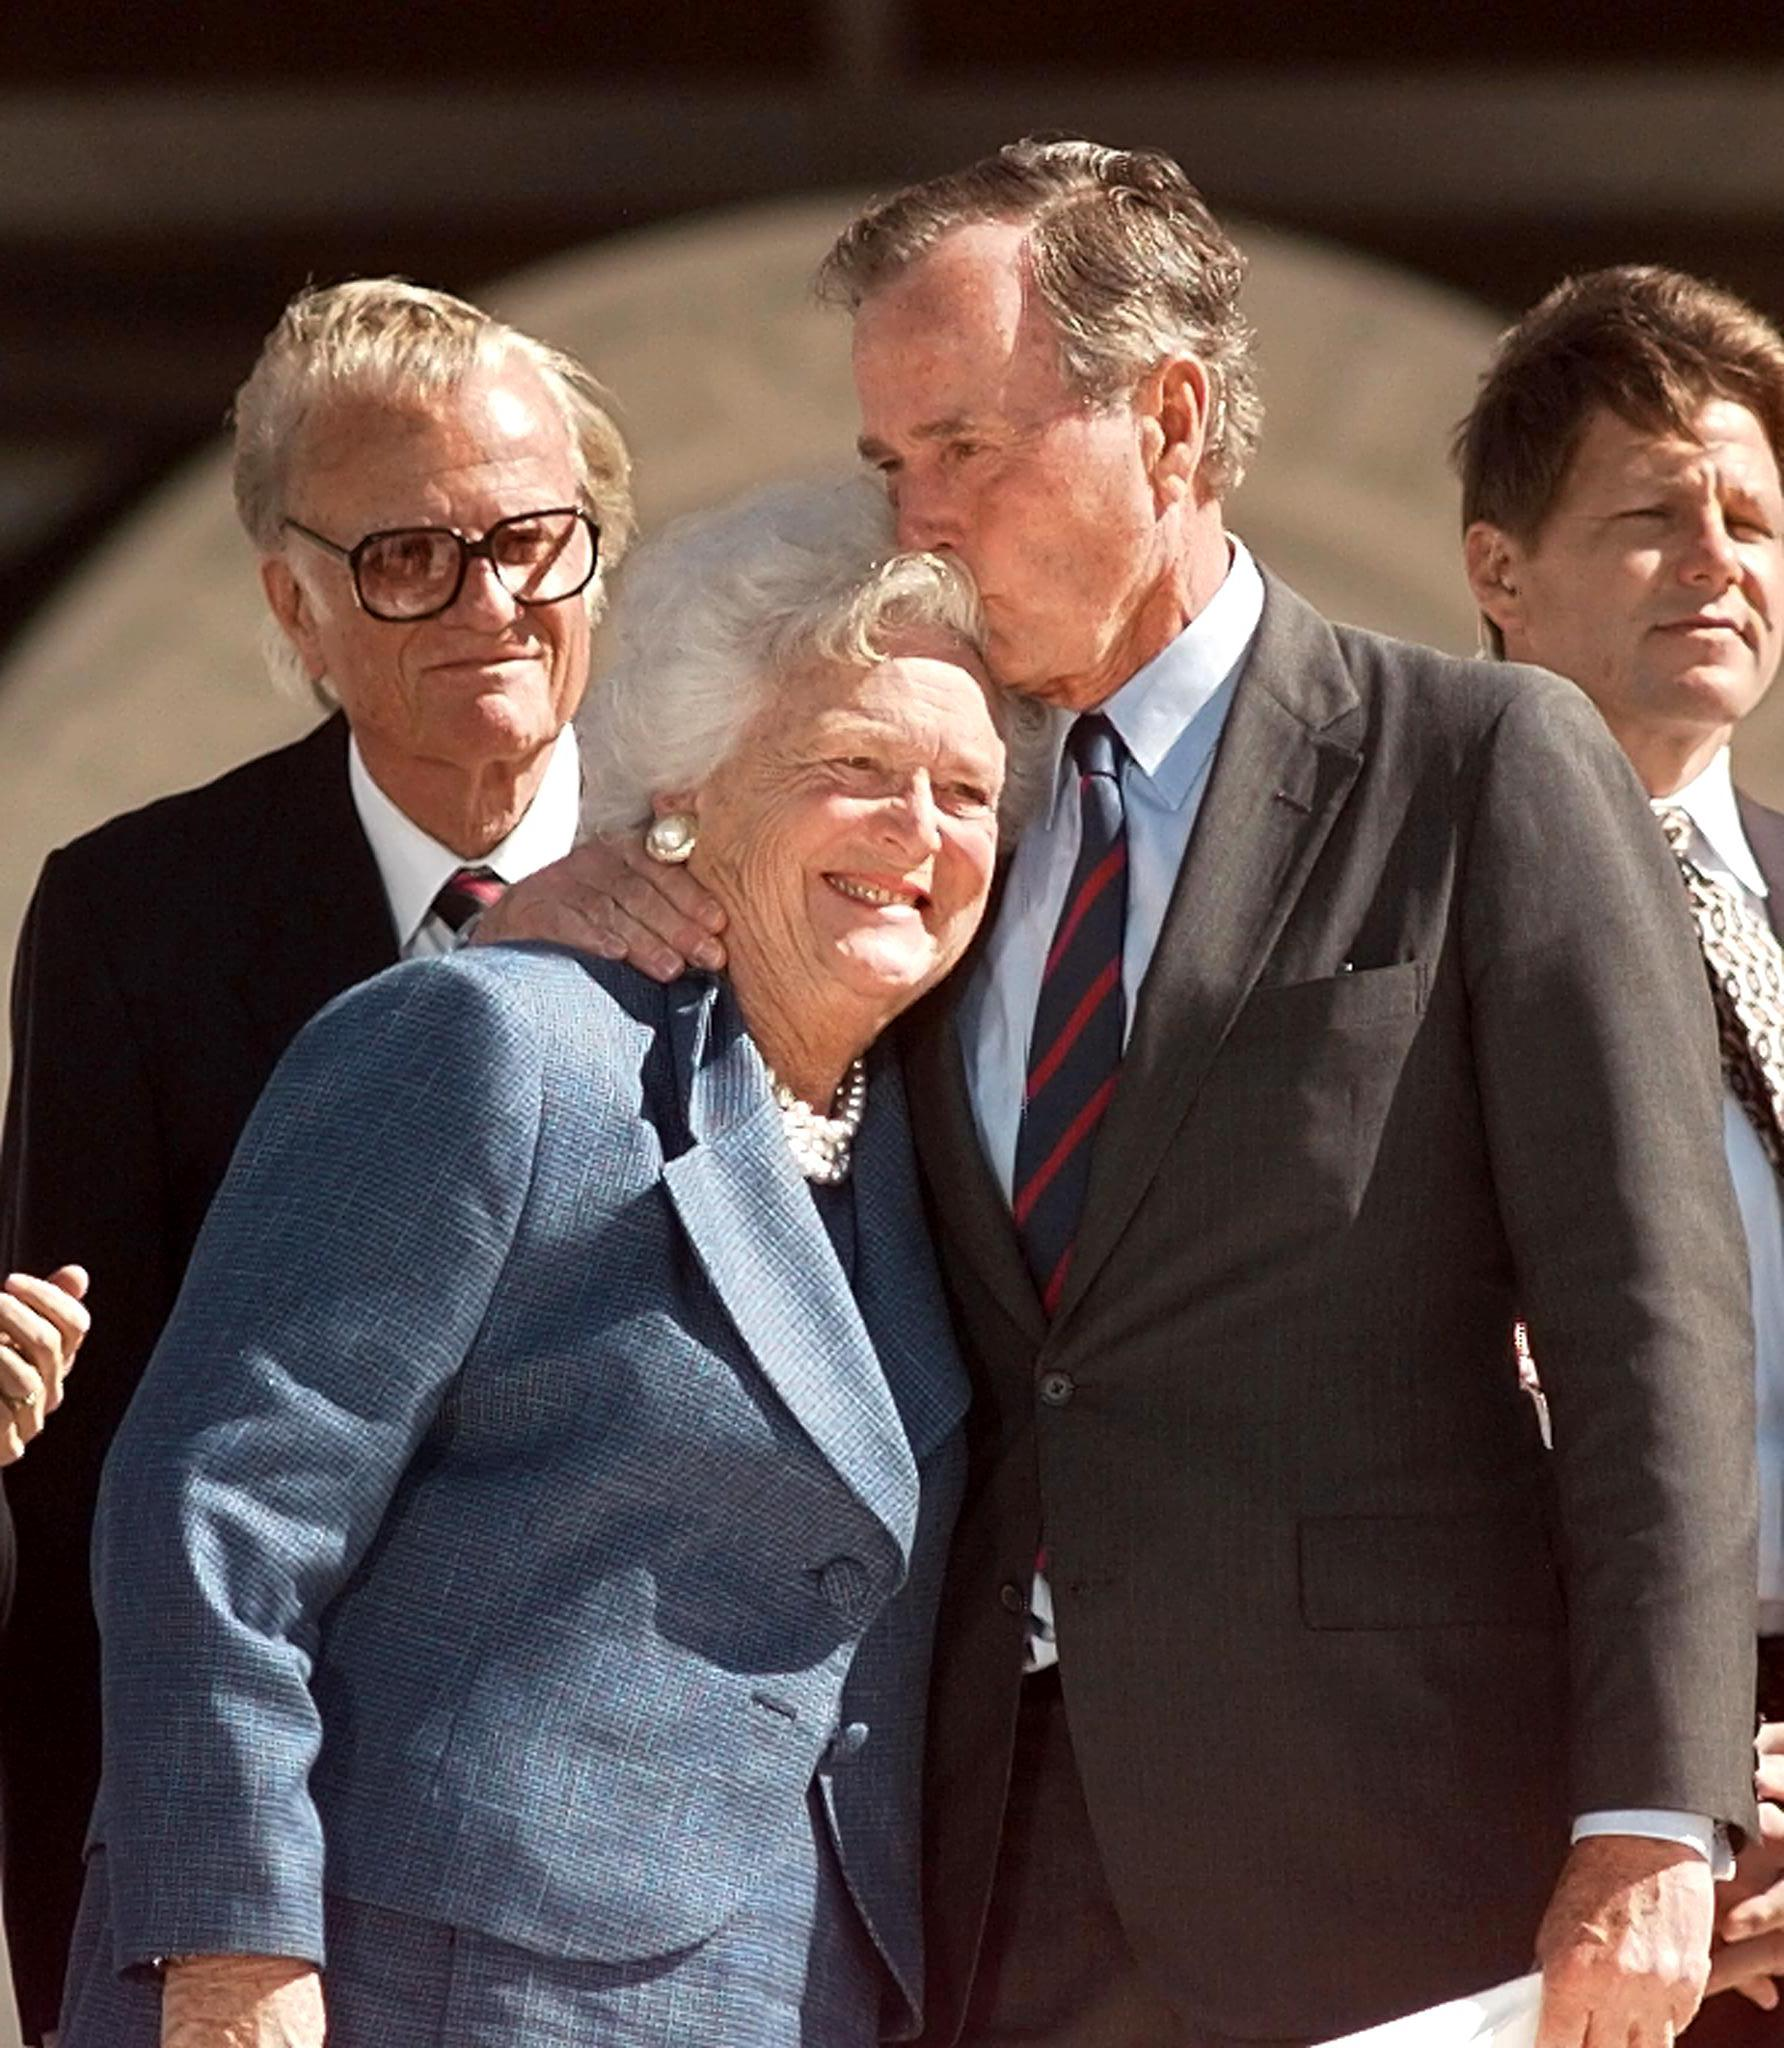 Former President George Bush kisses his wife Barbara as preacher Billy Graham looks on at the dedication ceremony of the George Bush Library. (Joyce Naltchayan/AFP/Getty Images)